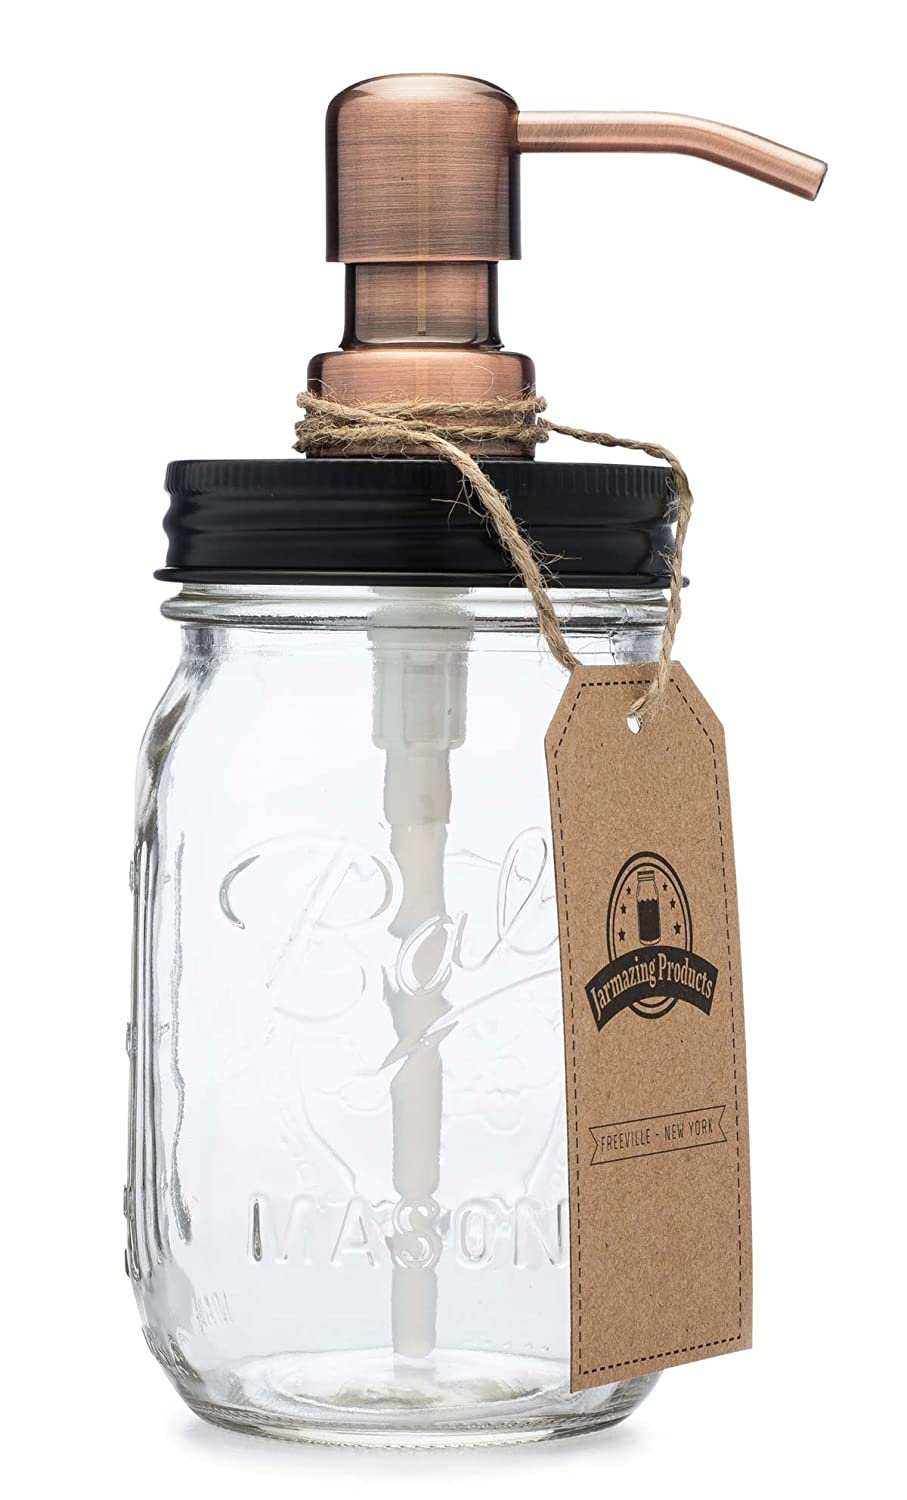 Jarmazing Products Mason Jar Soap Dispenser - Black lid with Copper Pump - With 16 Ounce Ball Mason Jar - Made from Rust Proof Stainless Steel mj-soap-blk-cop-16